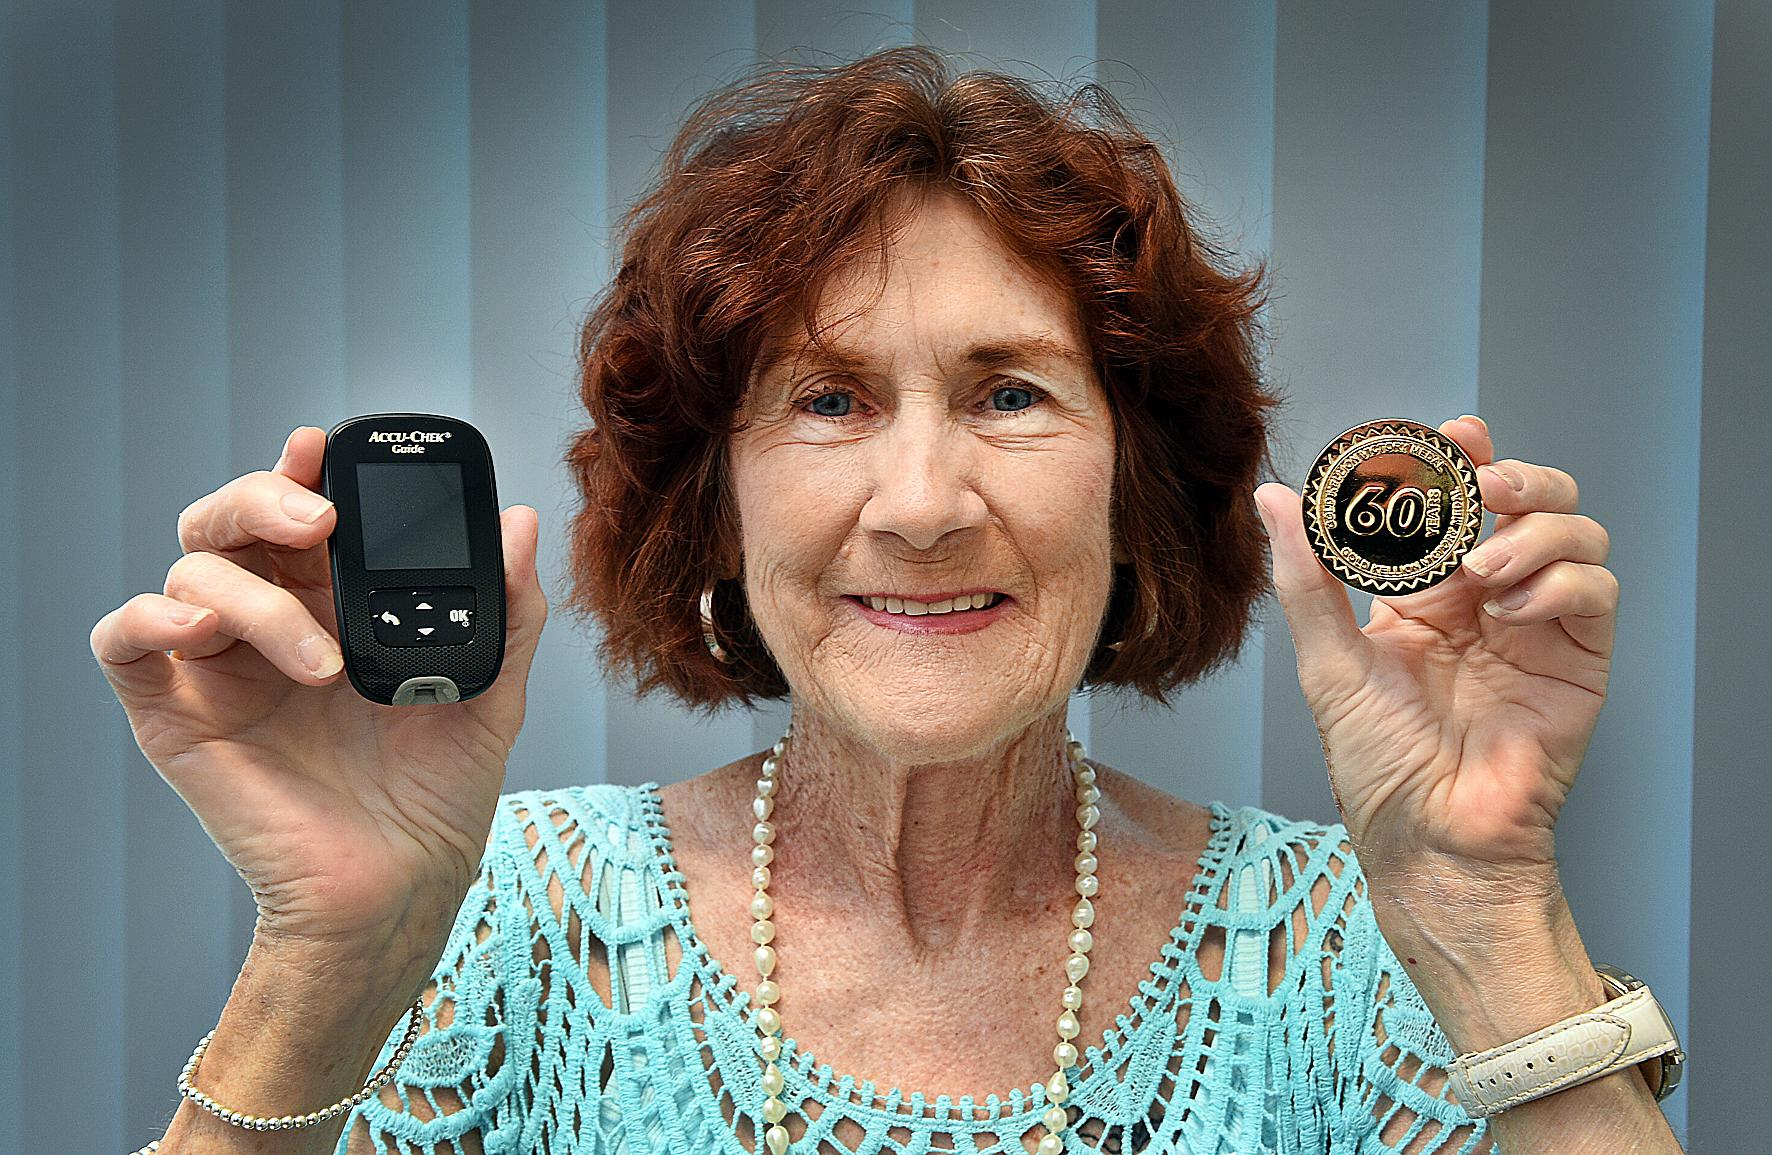 HEALTHY LIFE: Hervey Bay's Beryl Lethlean has been living with diabetes for 60 years, here she holds her glucometer which measures blood sugar levels and her Kellion Victory Medal.